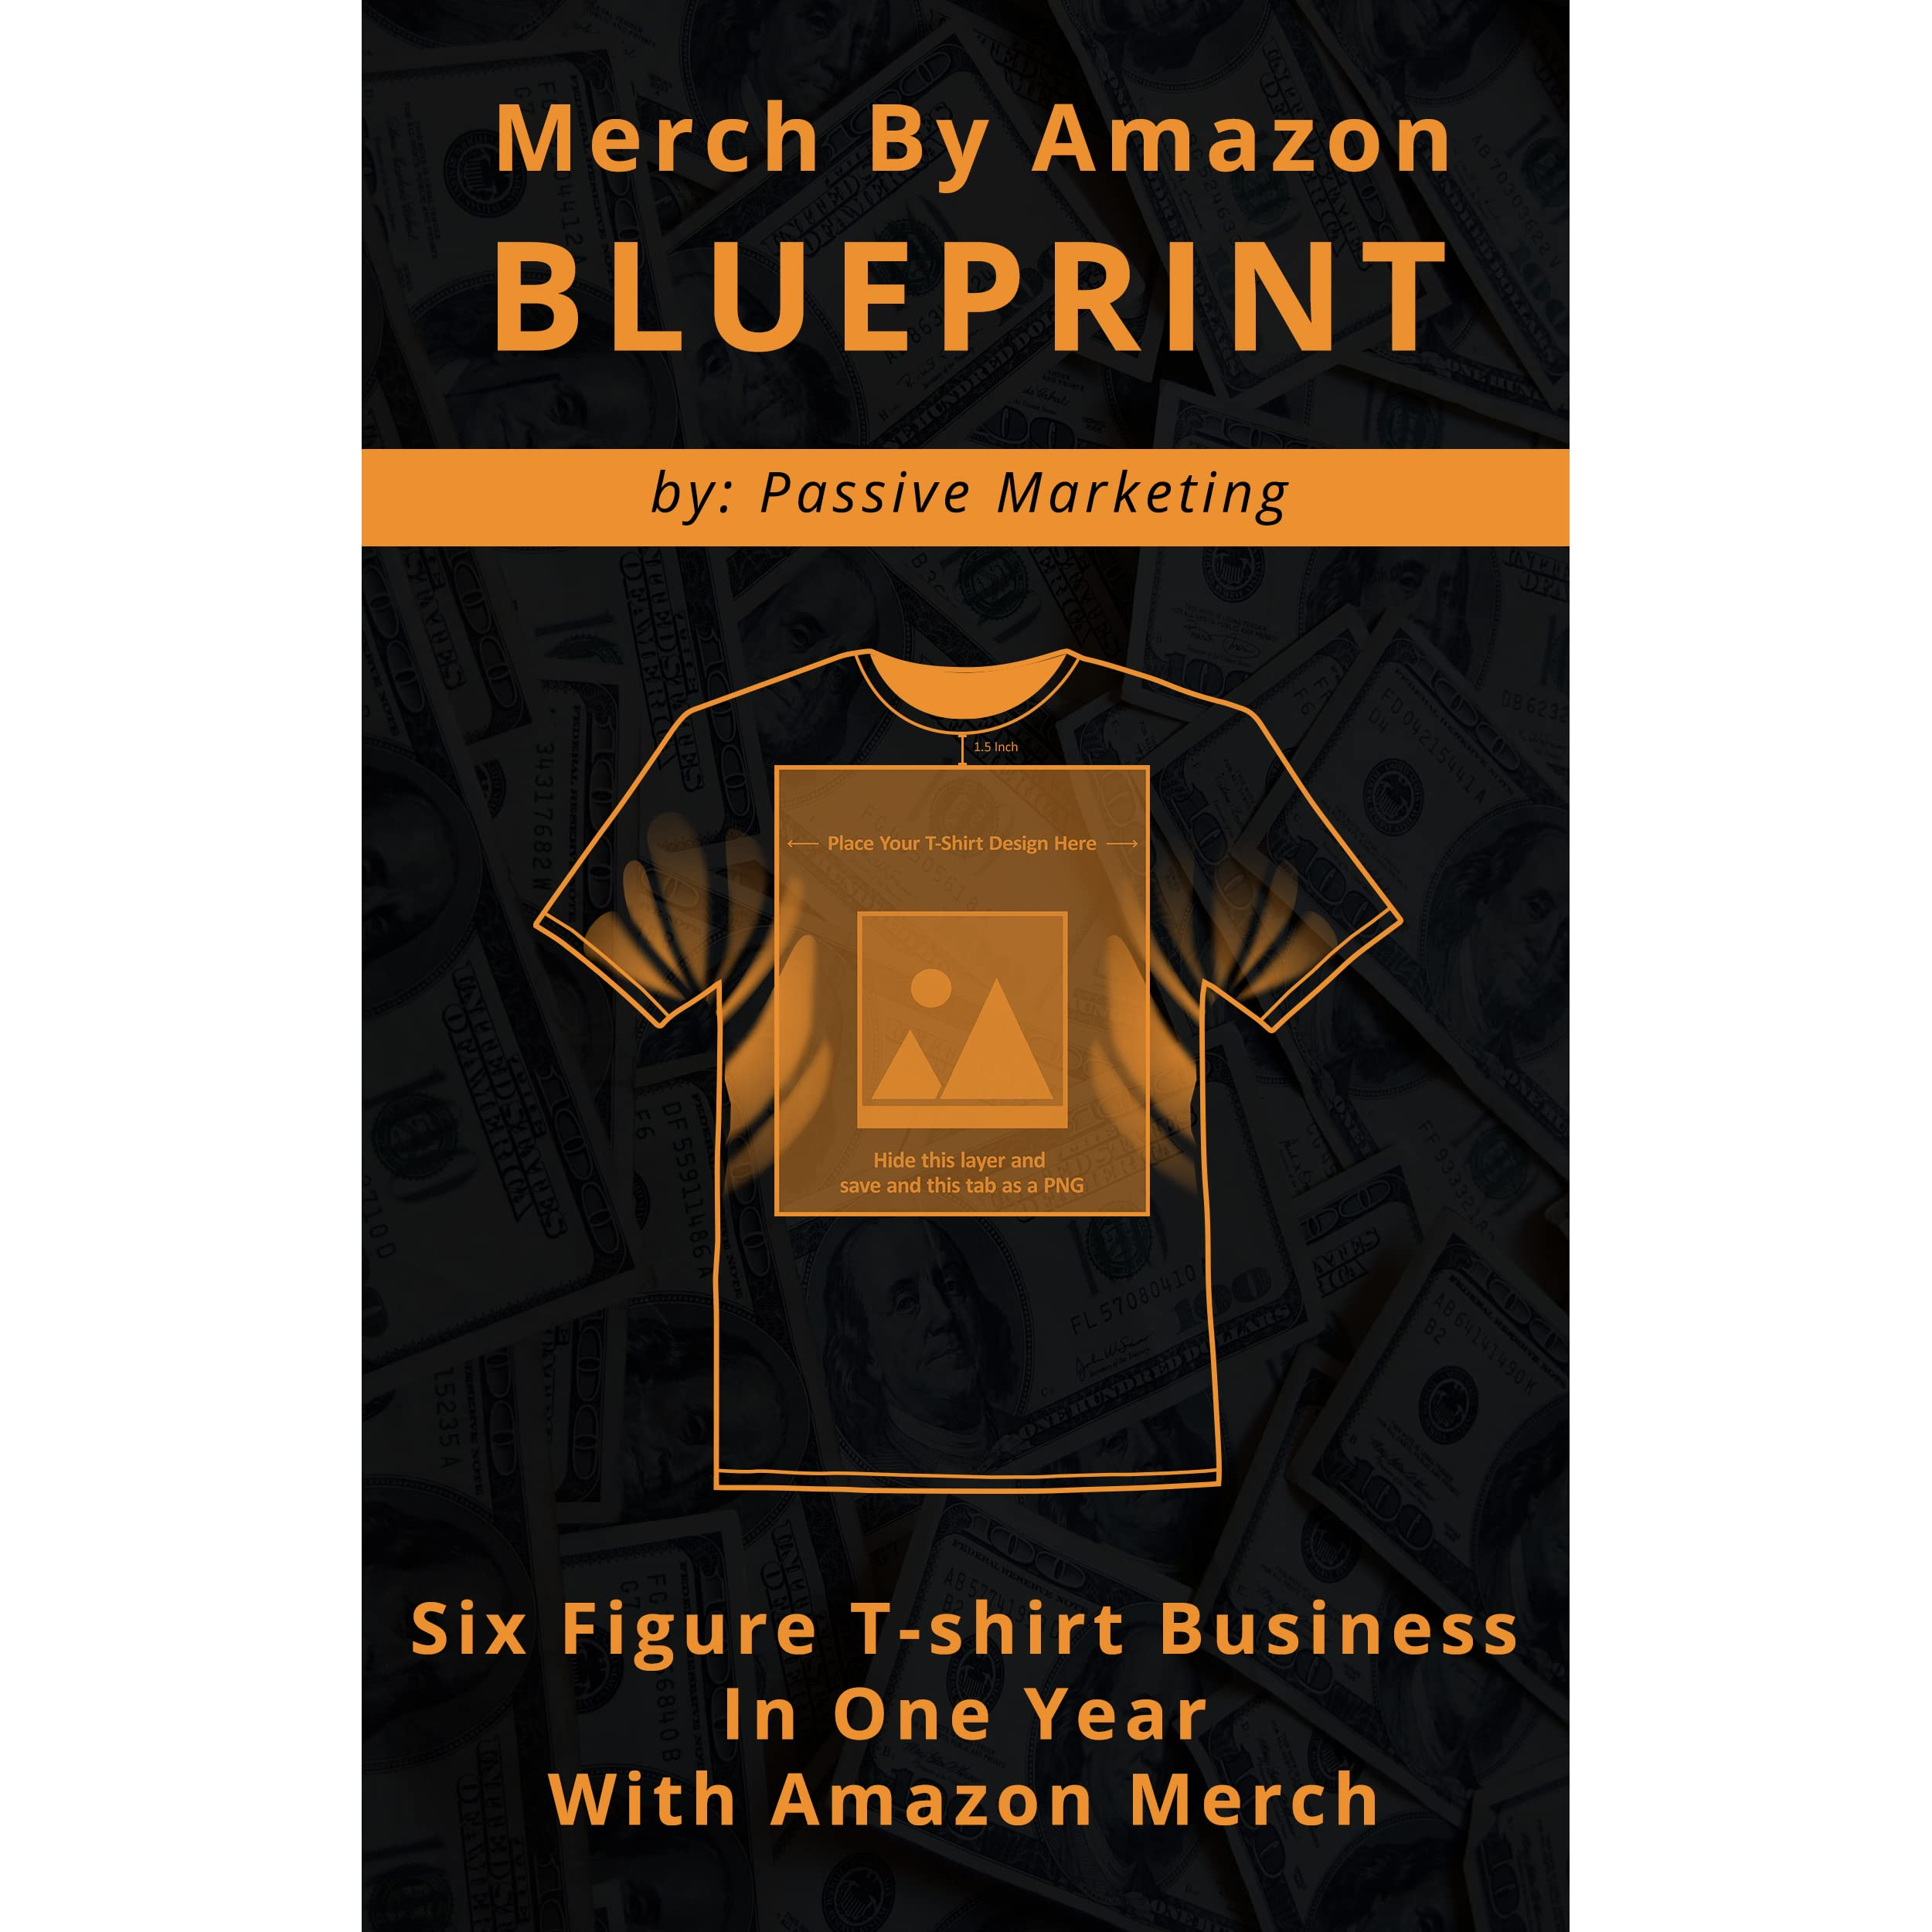 Merch by amazon blueprint six figure t shirt business in one year merch by amazon blueprint six figure t shirt business in one year with amazon merch by passive marketing malvernweather Images